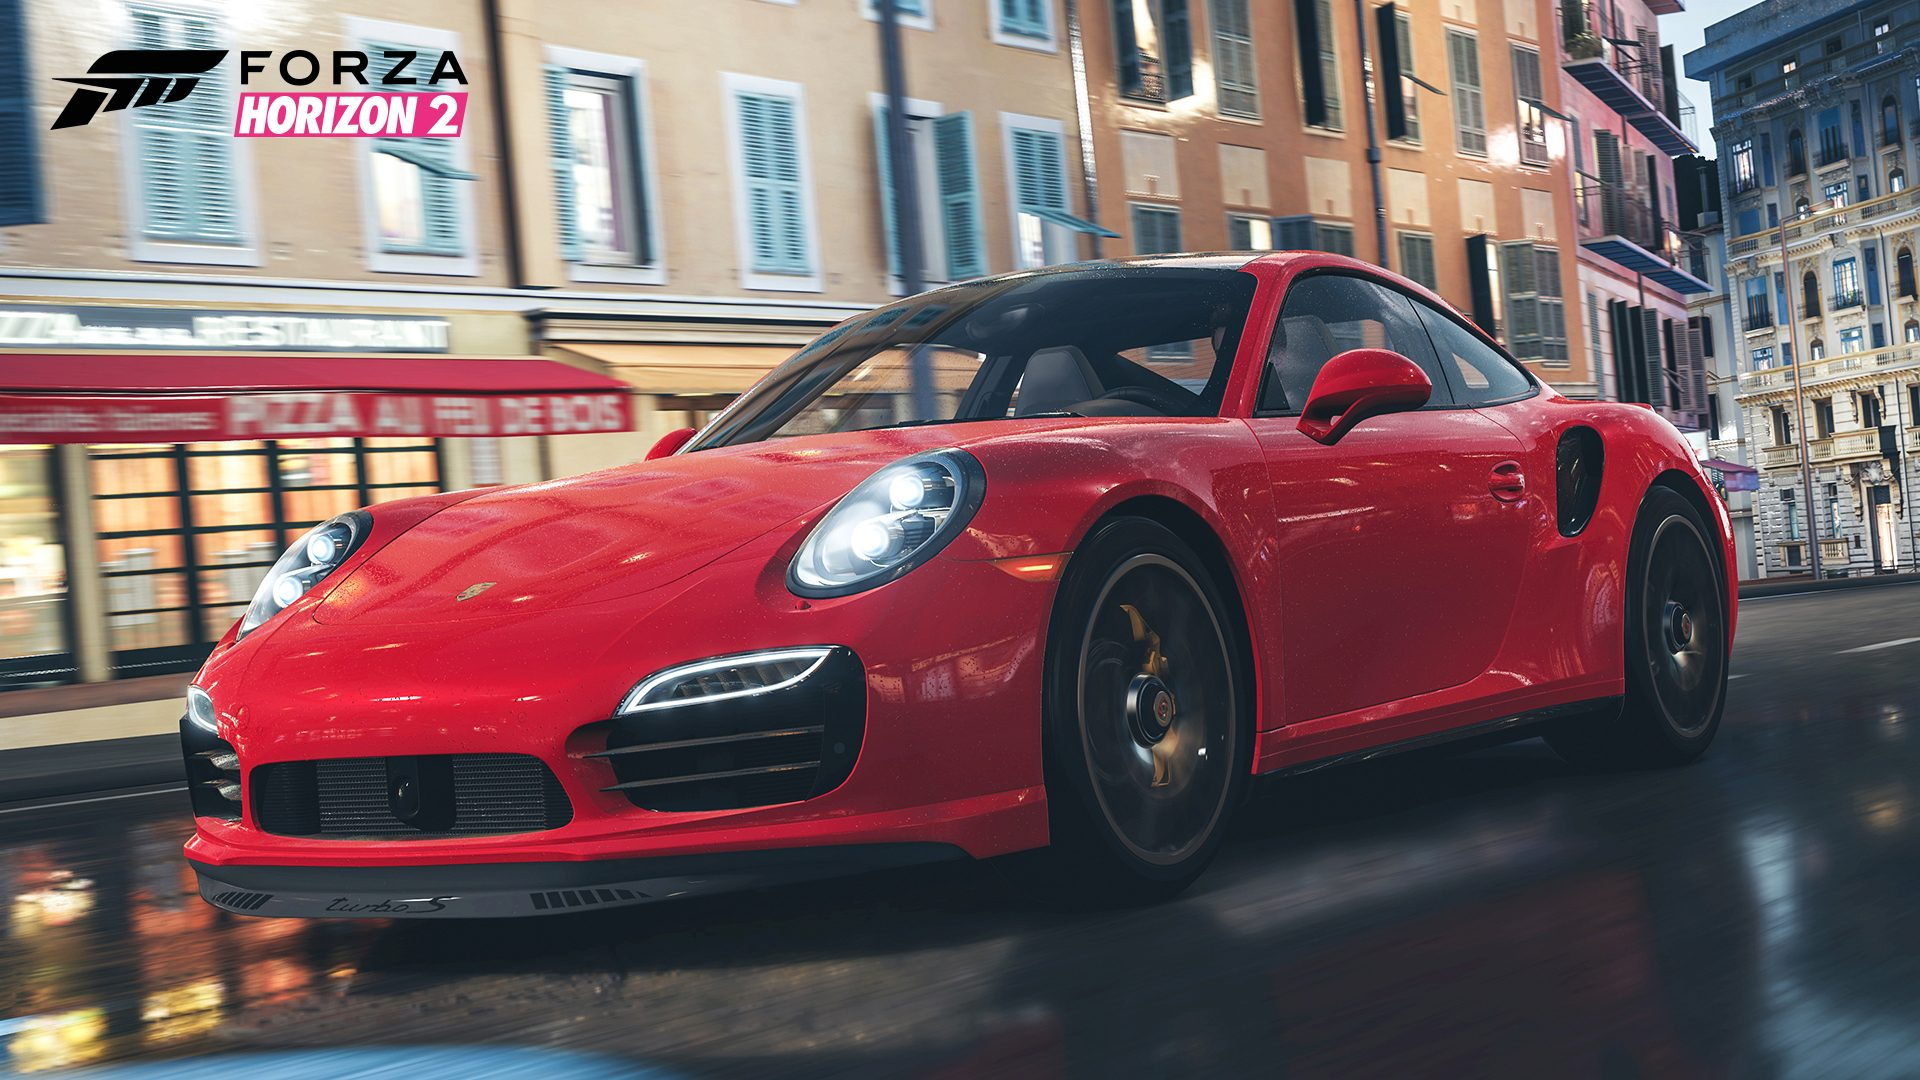 porsche returns to forza series in new horizon 2 expansion pack. Black Bedroom Furniture Sets. Home Design Ideas